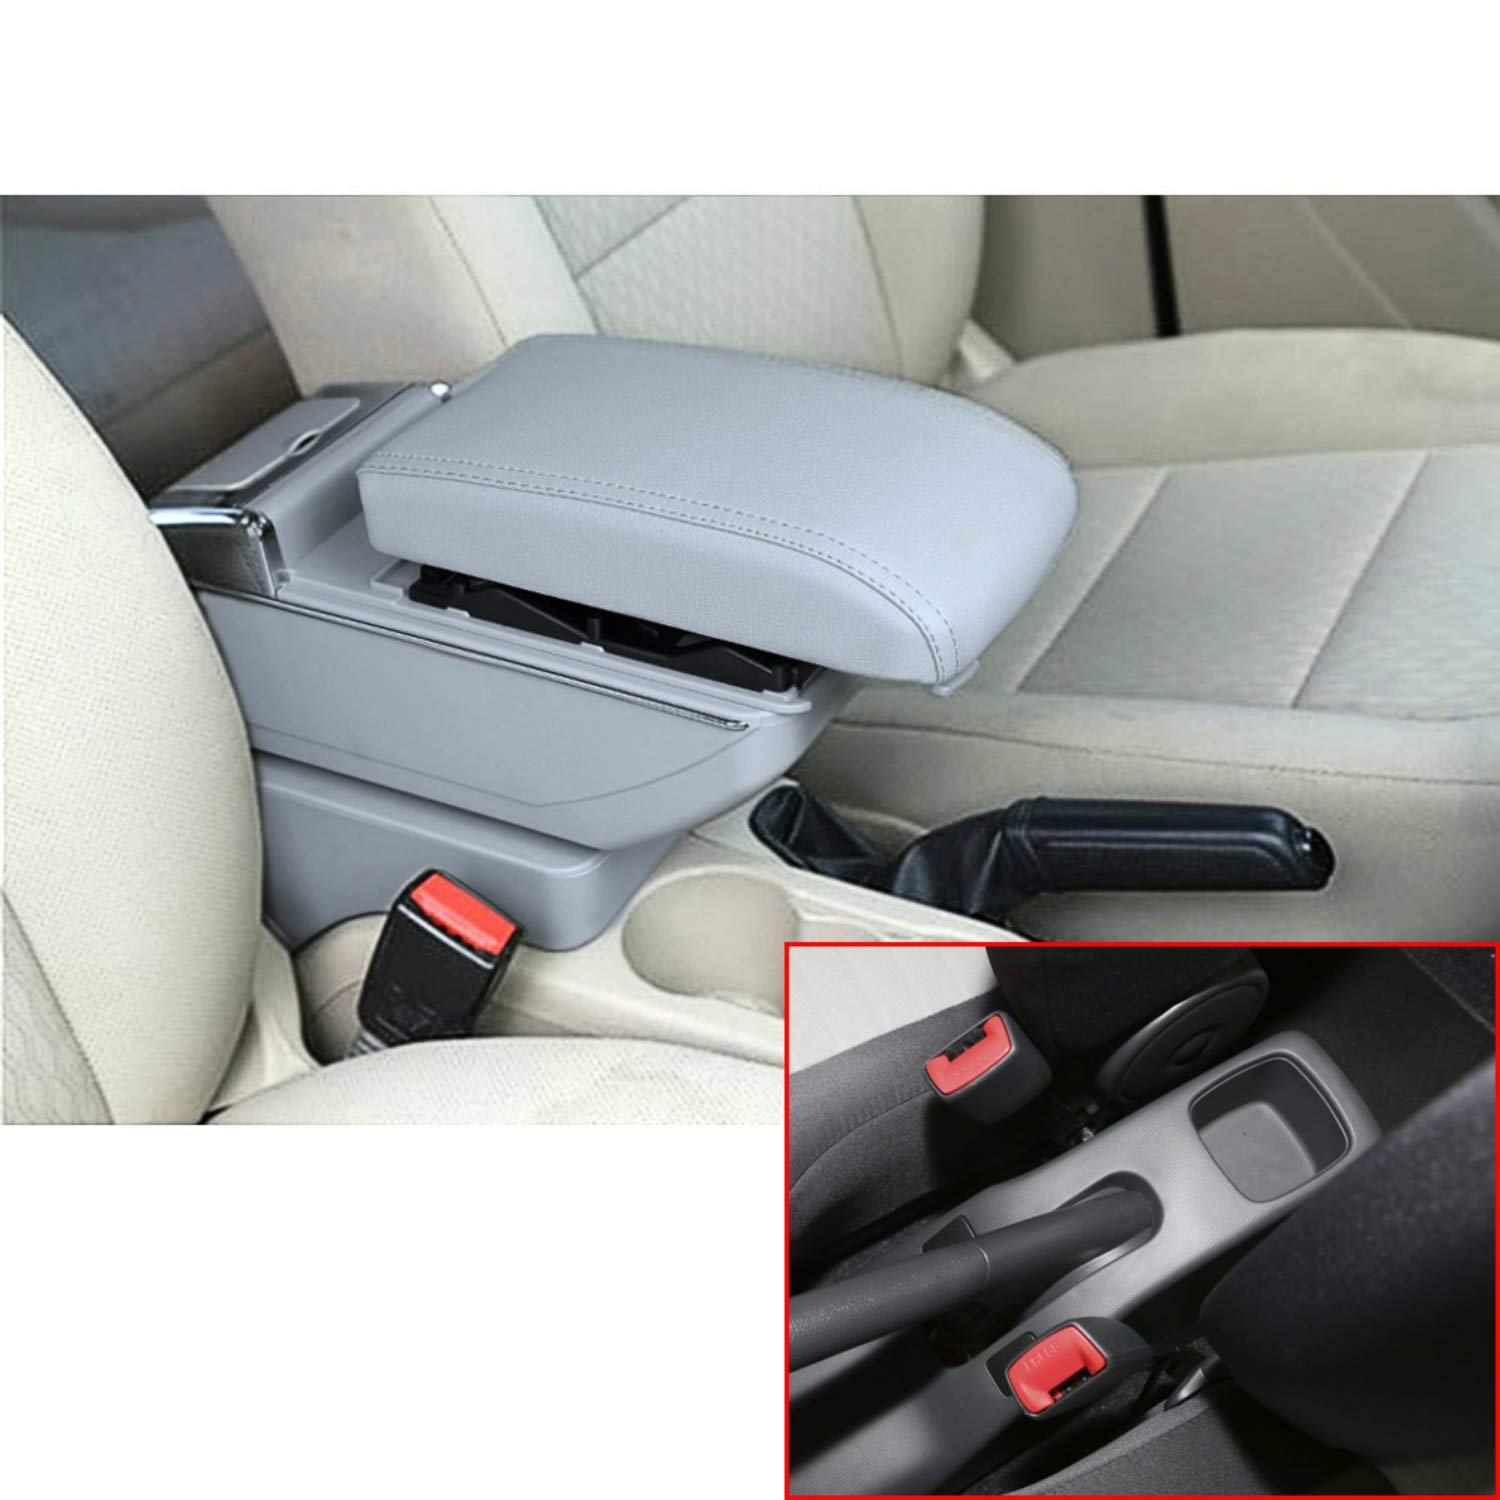 MyGone for 2005-2018 Suzuki Swift Car Interior Accessories Center Consoles Armrest Box,Oversized Storage Space,Cover can be Raised,Built-in LED ...